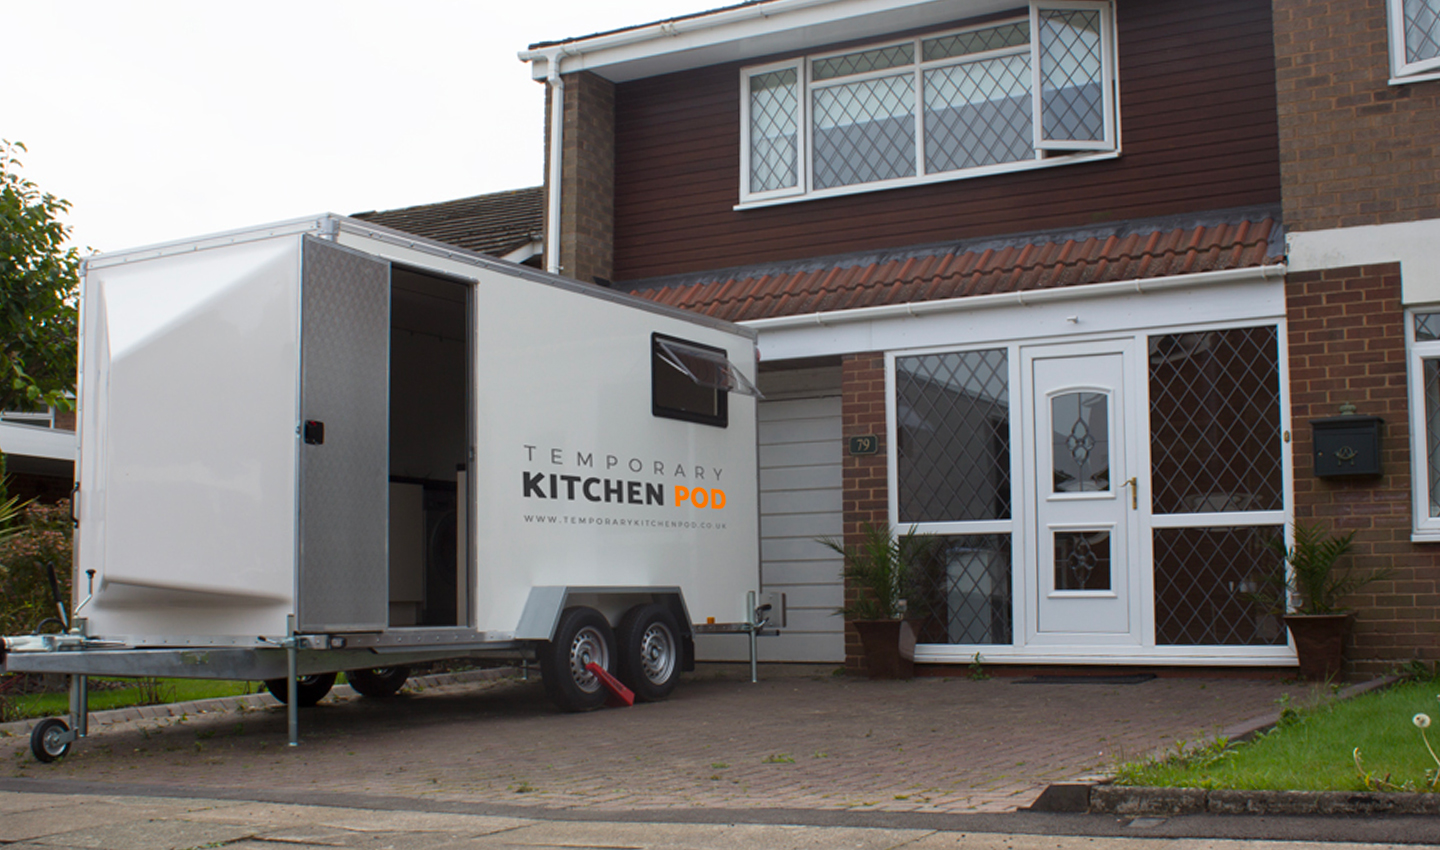 Genial Temporary Kitchen Hire While Remodelling Your Home